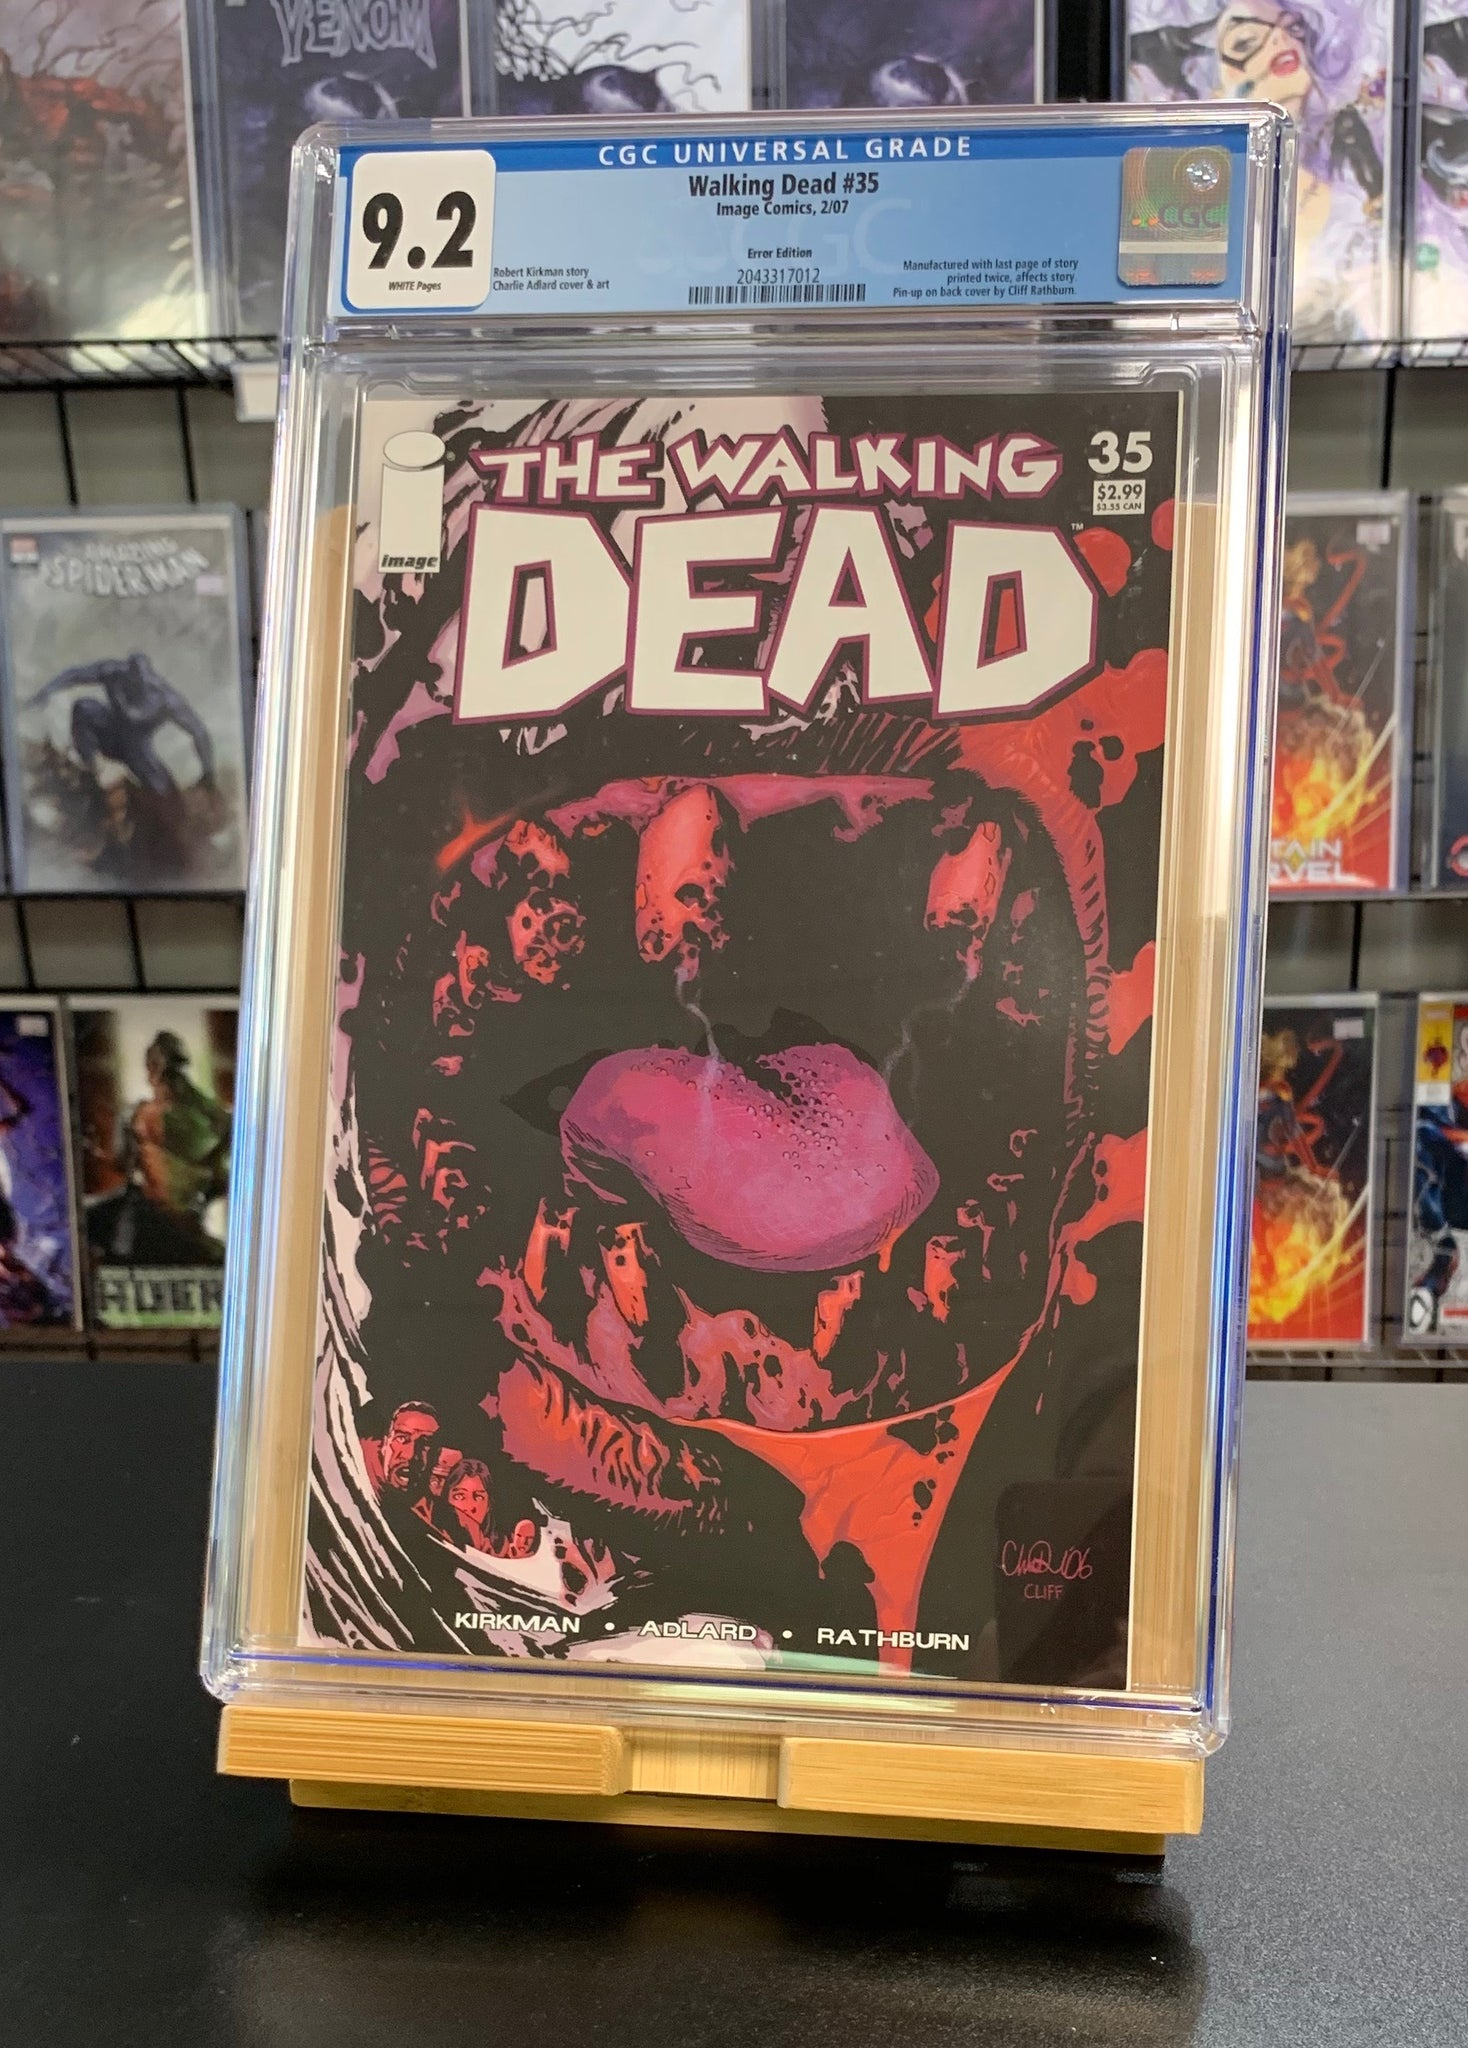 9.2 CGC Walking Dead #35 ERROR EDITION RARE Kirkman Image Comics 2007